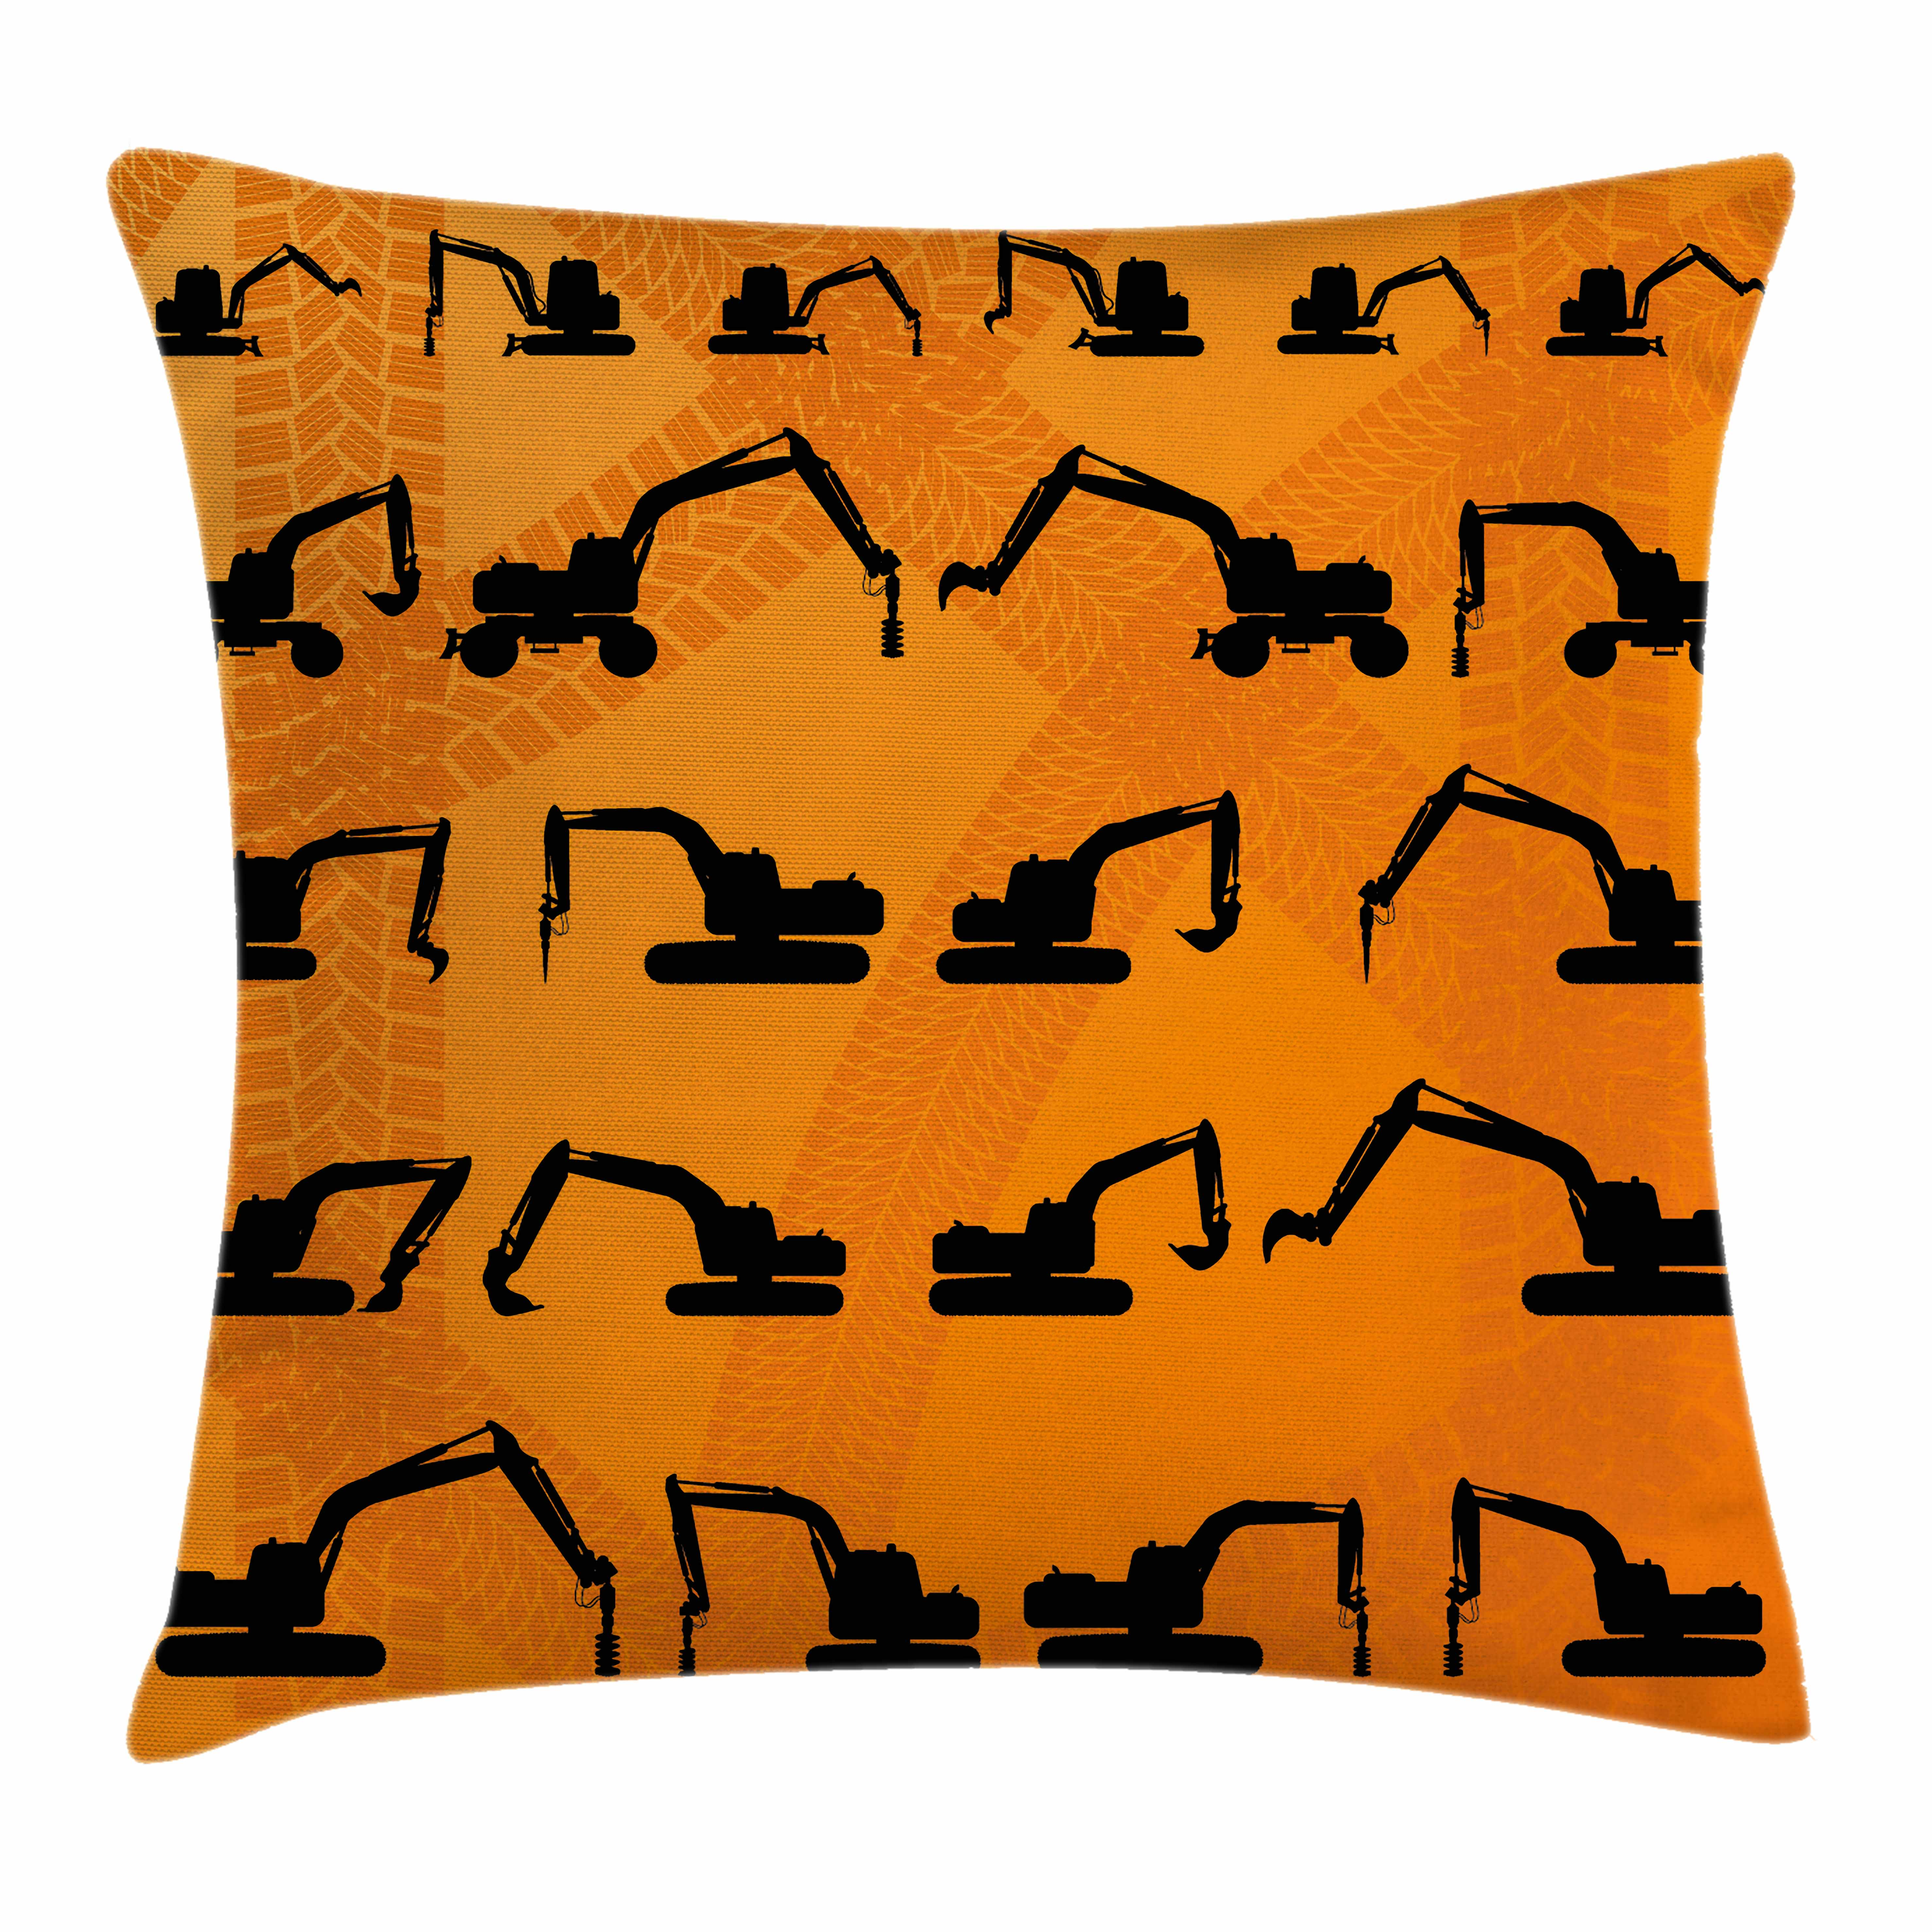 Construction Throw Pillow Cushion Cover, Excavator Black Silhouettes Tire Traces Track Machinery Industry Technology, Decorative Square Accent Pillow Case, 24 X 24 Inches, Orange Black, by Ambesonne